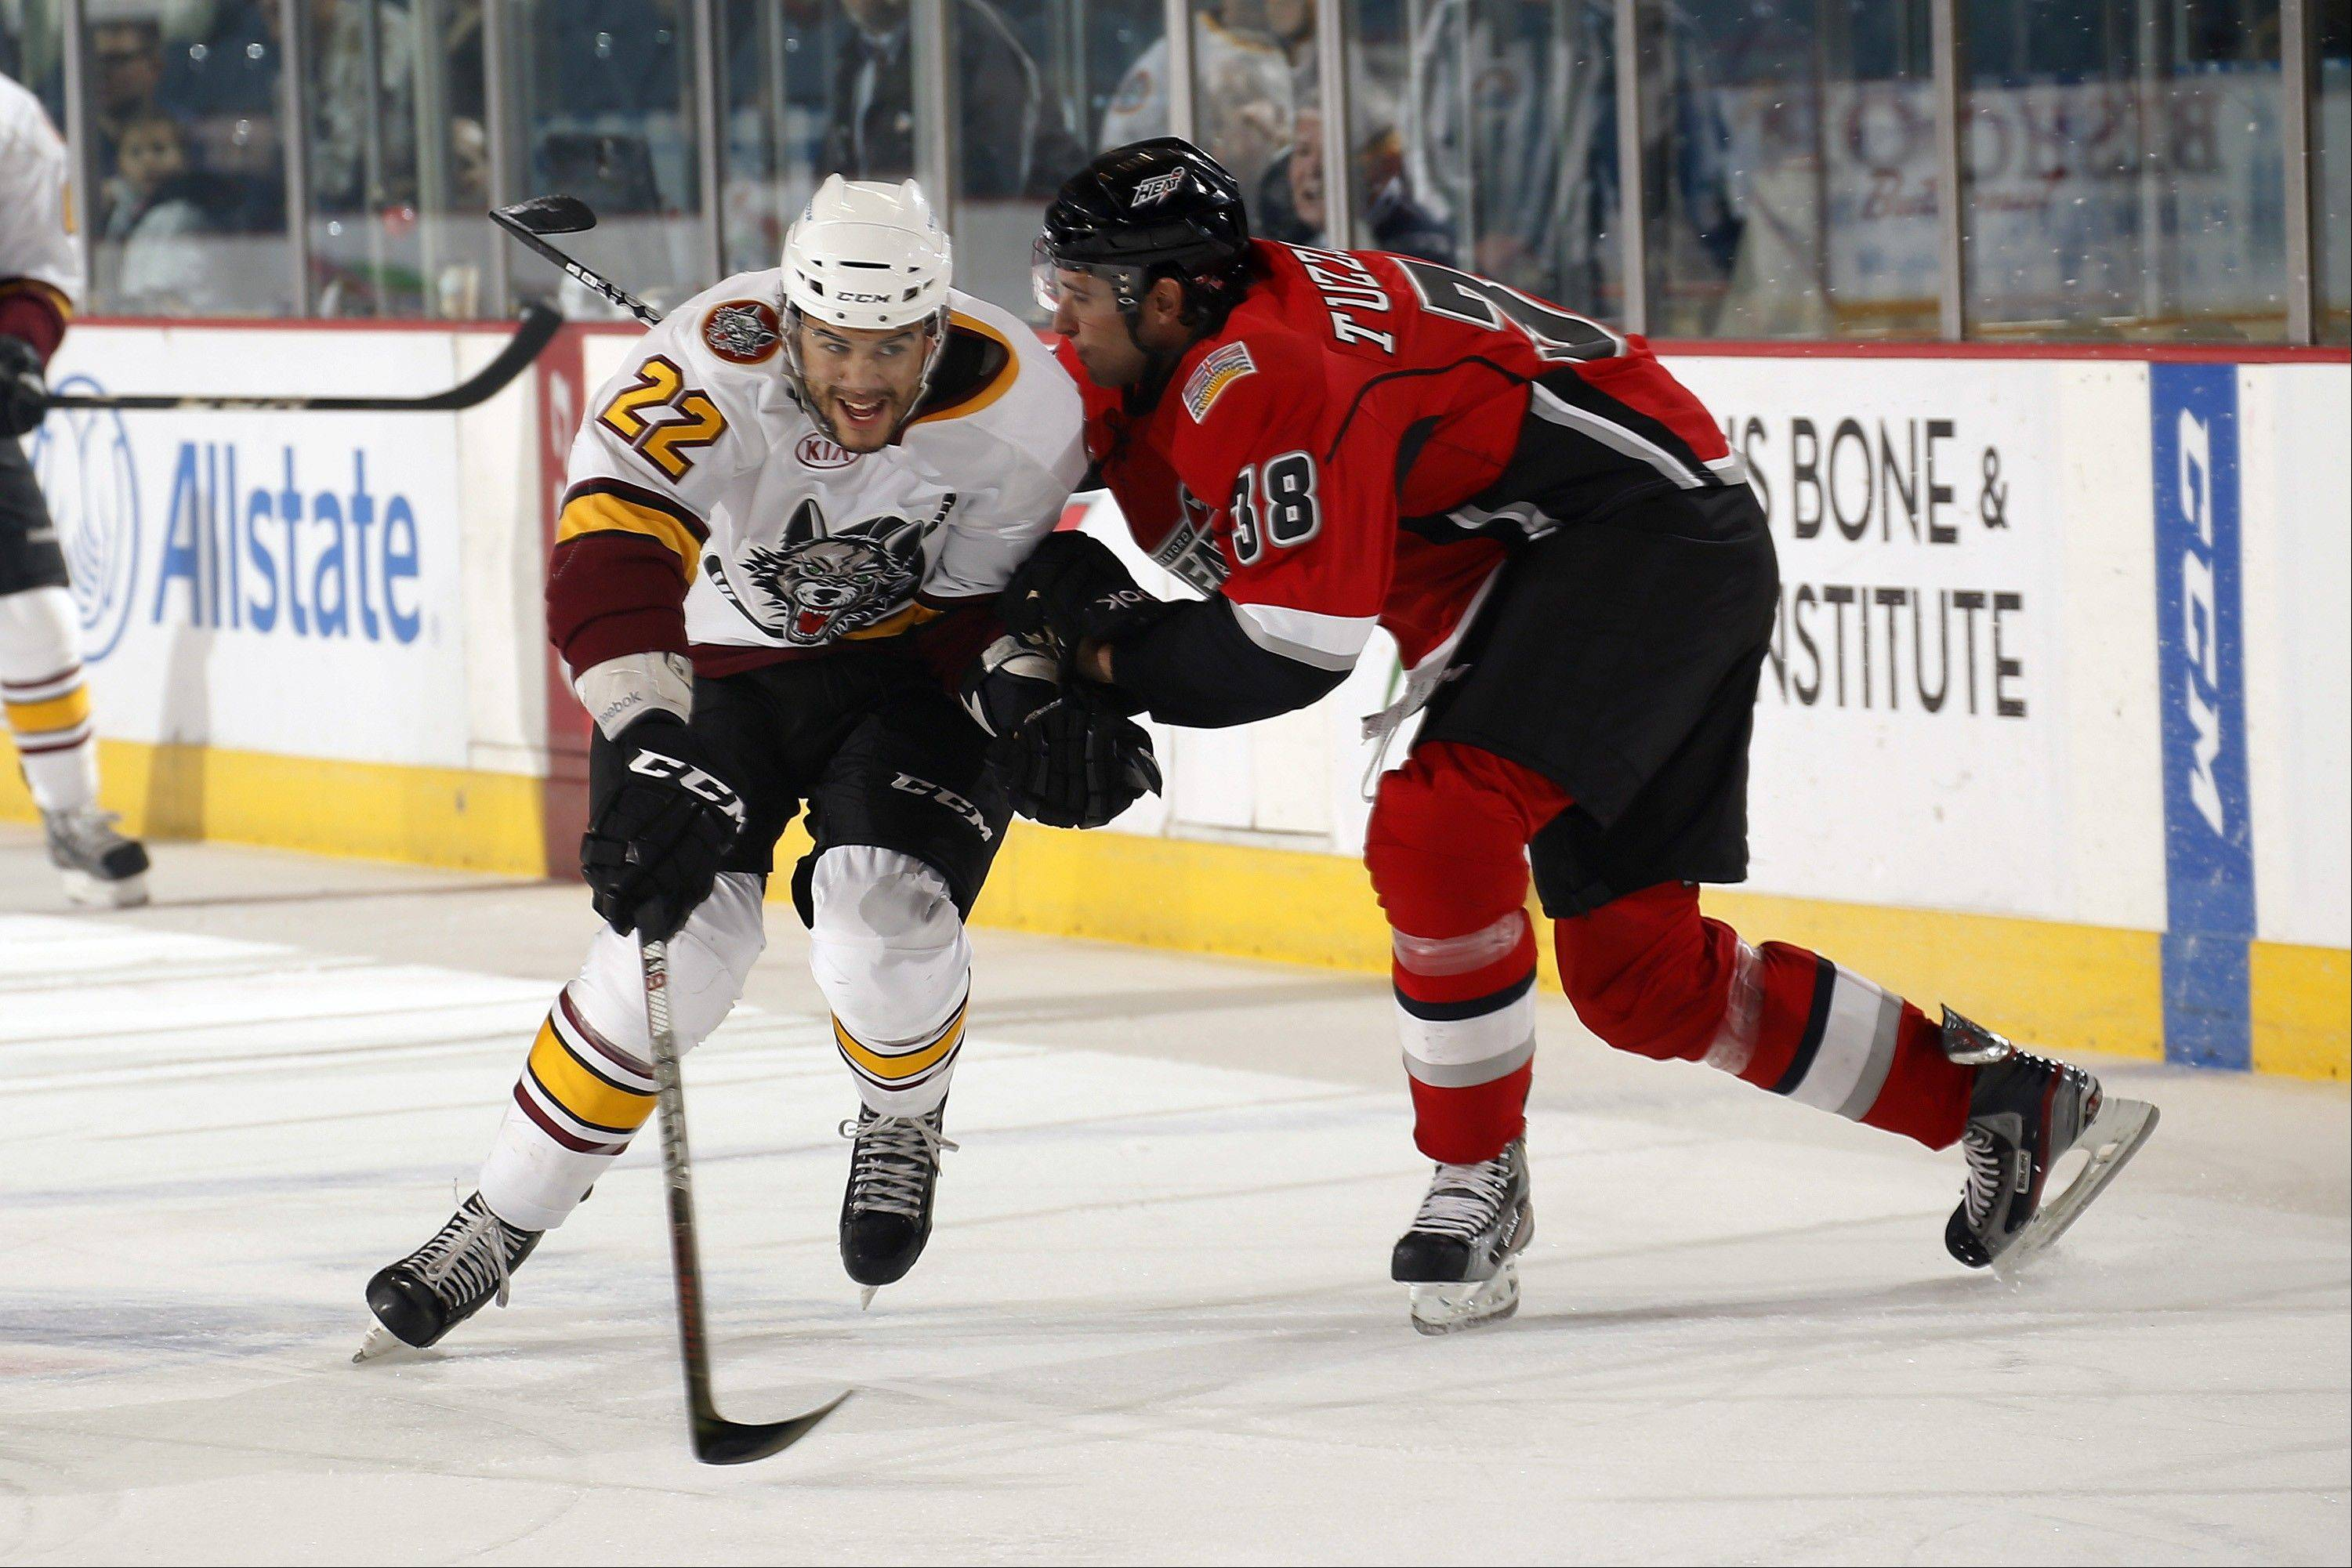 Chicago Wolves winger Darren Archibald battles for position against defenseman Nick Tuzzolino of the Abbotsford Heat. The Wolves earned a 1-0 win in their School-Day game Wednesday afternoon at Allstate Arena.